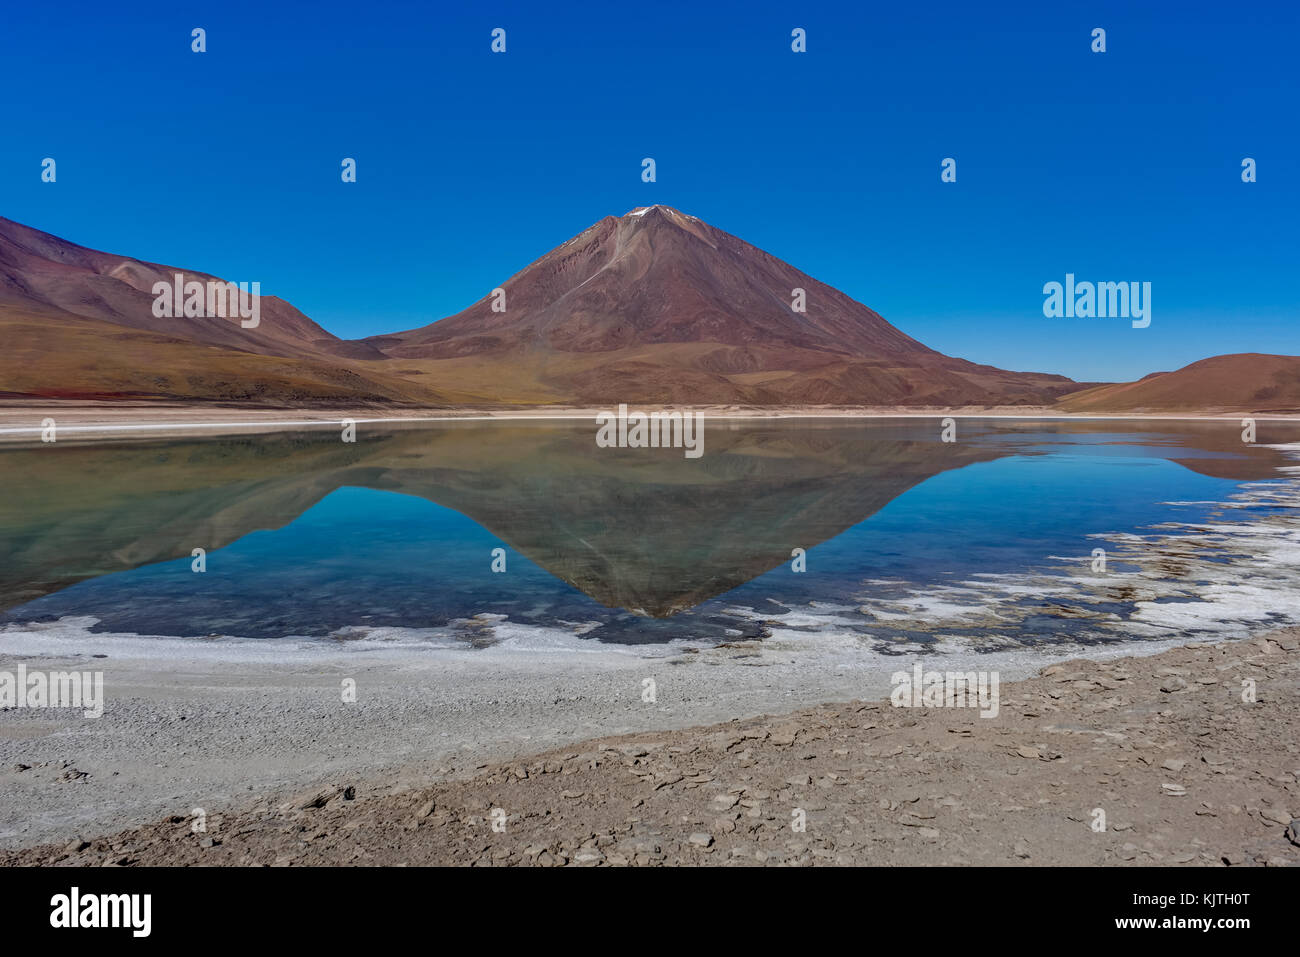 Photo taken in August 2017 in Altiplano Bolivia, South America: Laguna Verde Altiplano Bolivia - Stock Image